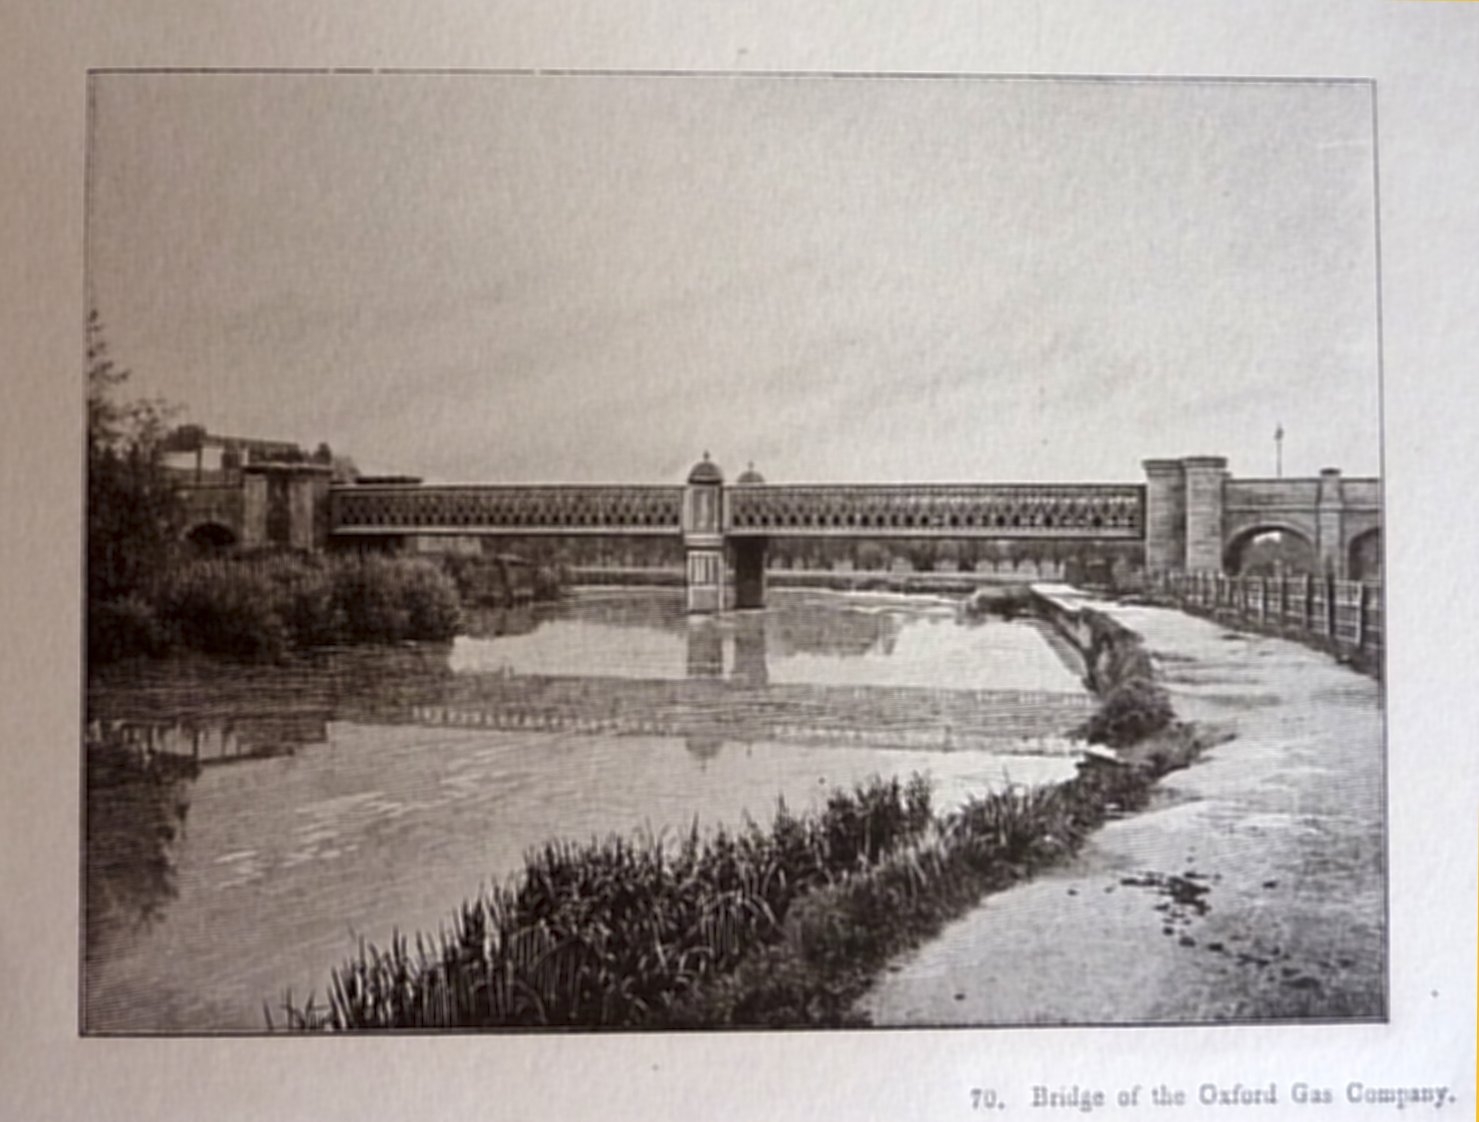 [Gasworks railway bridge from Dredge 1897]